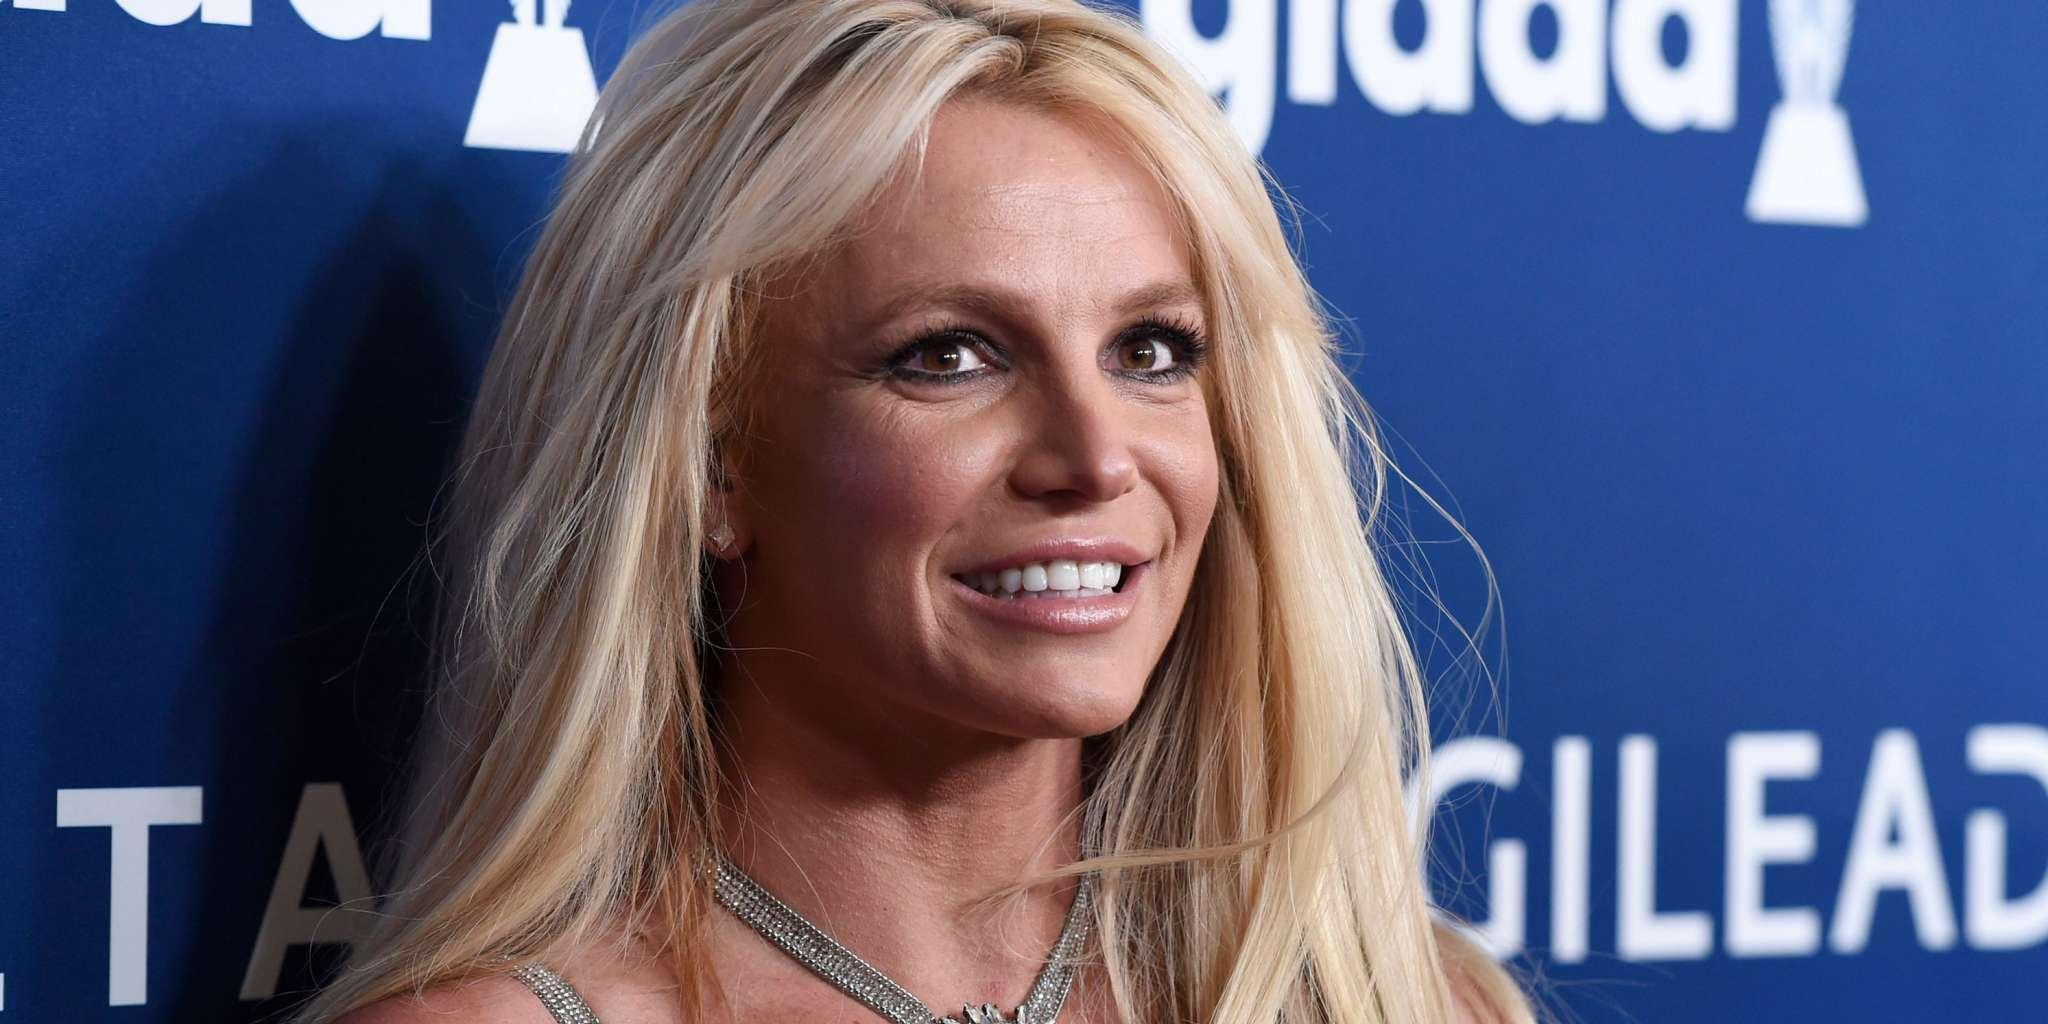 Britney Spears Requests To Be Freed From Her Father's Control Under Conservatorship